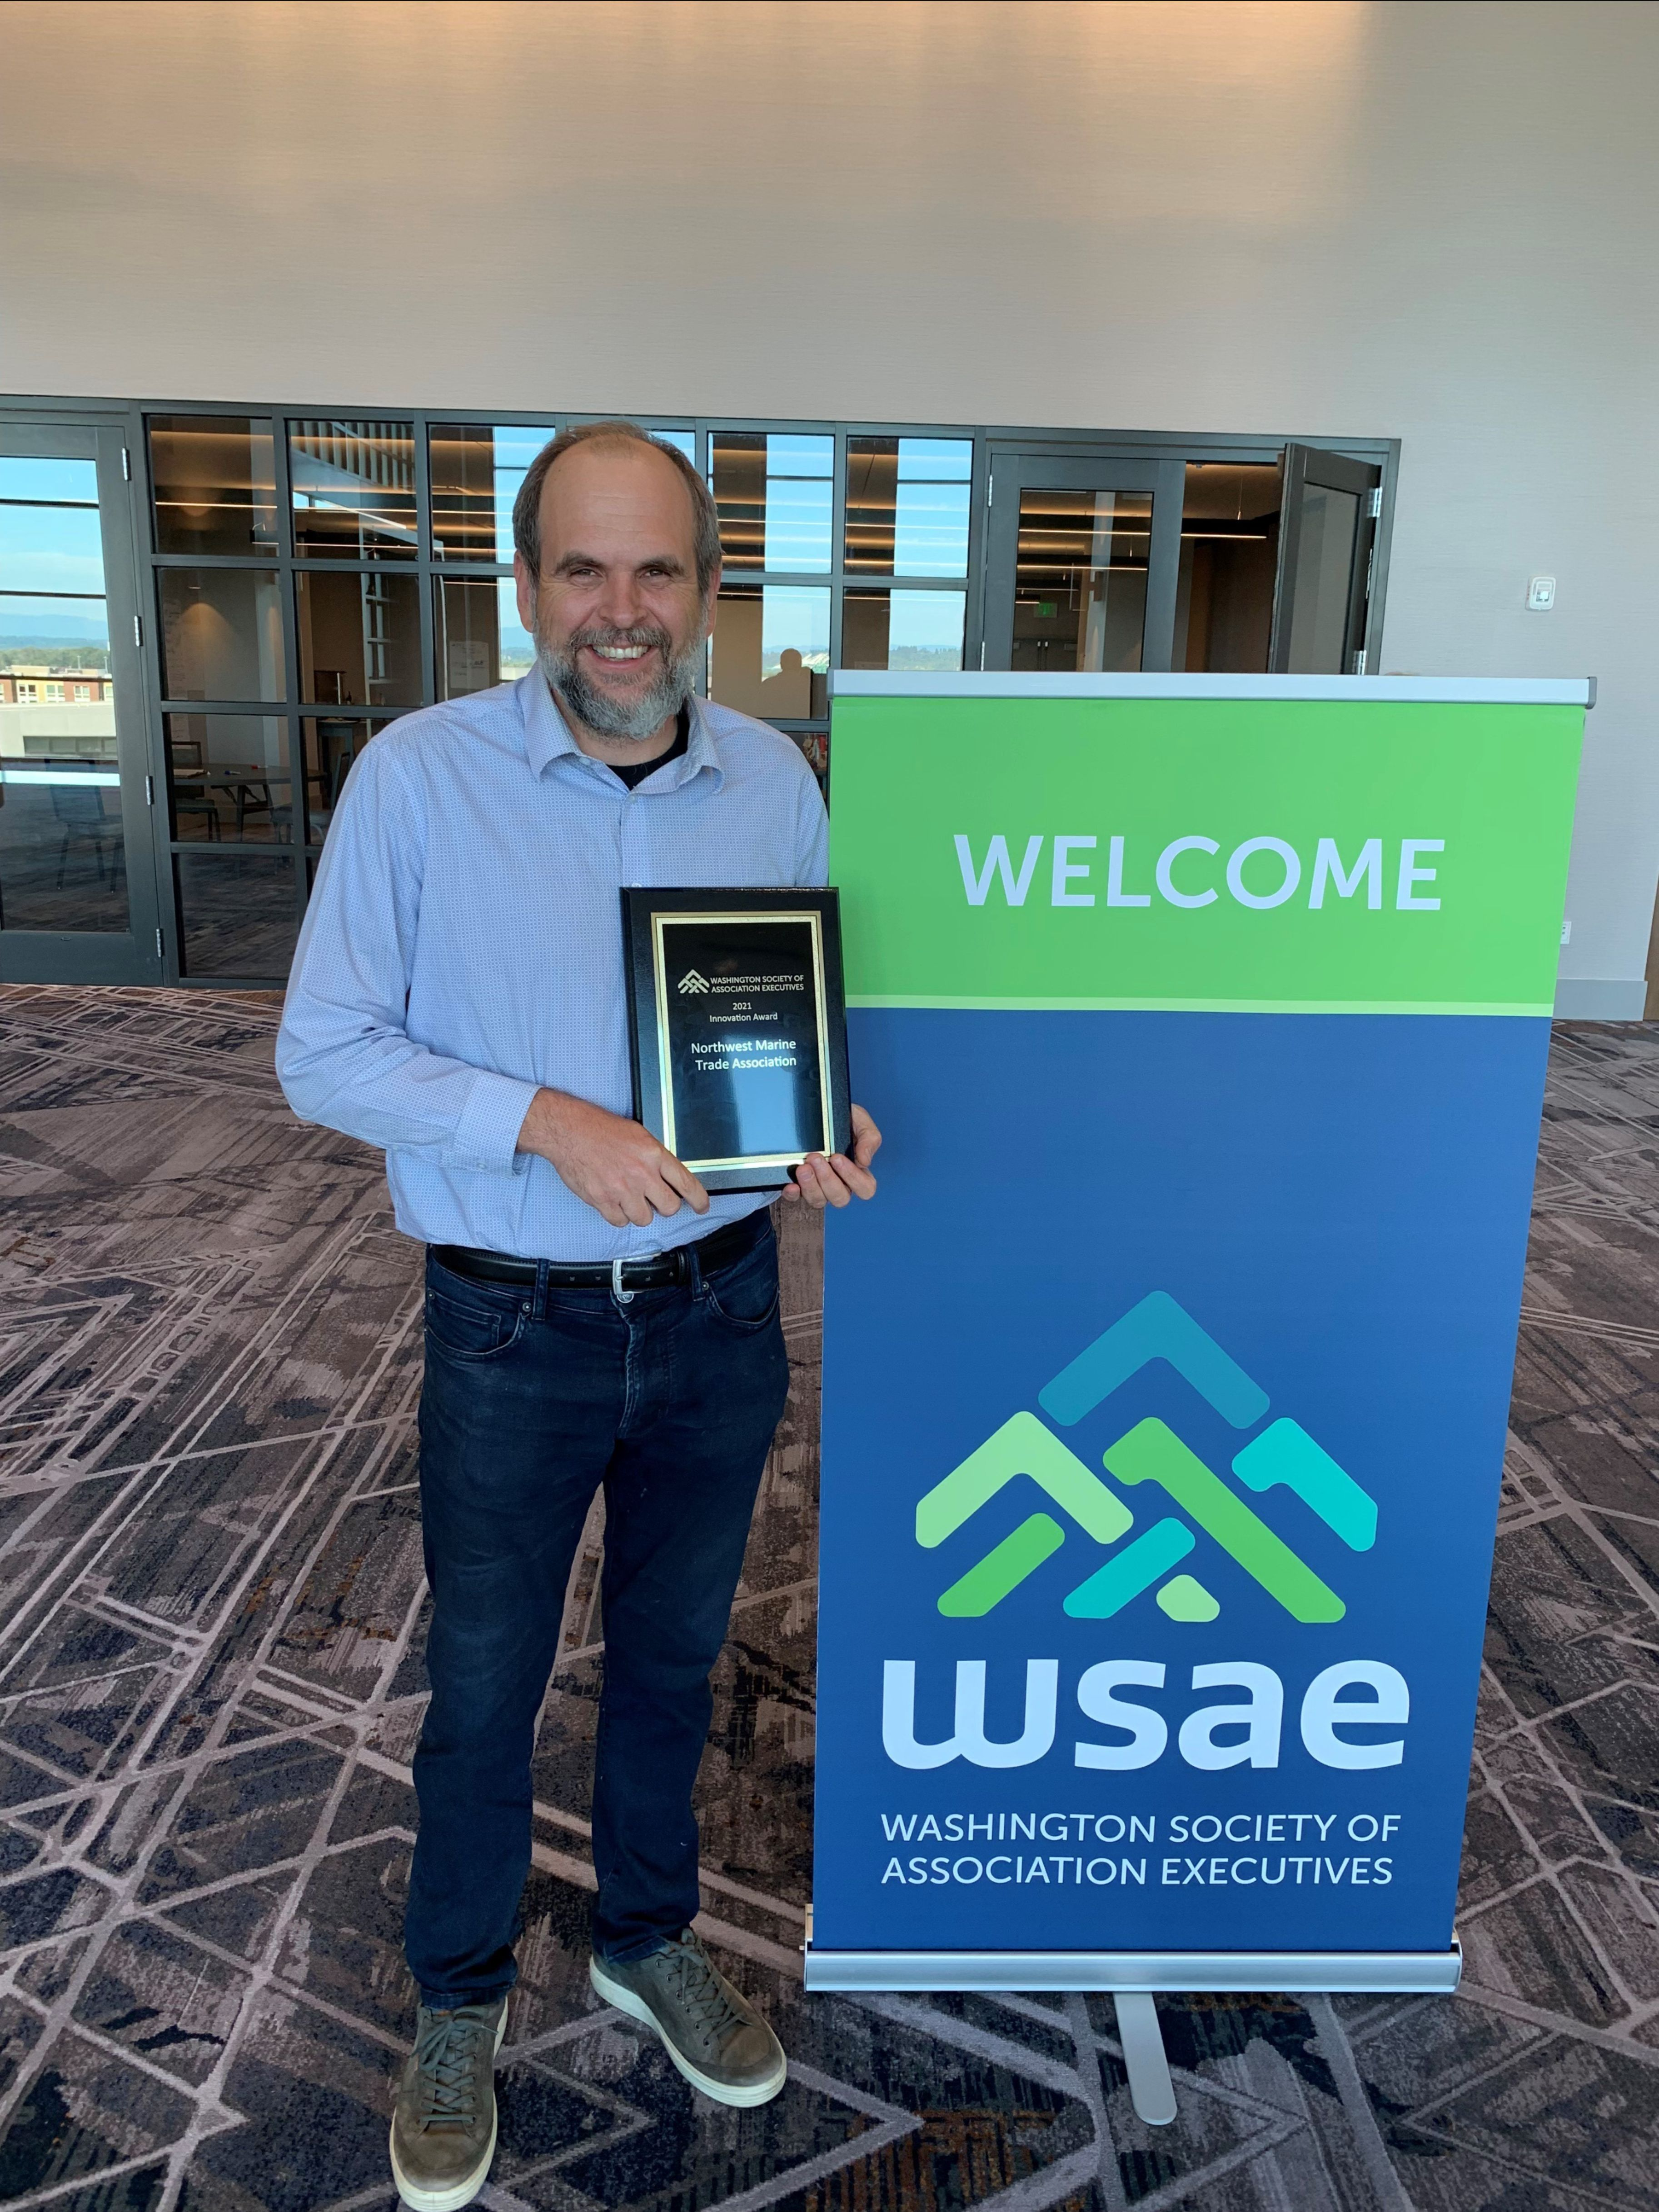 NMTA received the Innovation Award from the Washington Association of Society Executives (WSAE) for Seattle Boat Show Connected. Peter Schrappen received the award on our behalf and the trophy will be on display at our office.